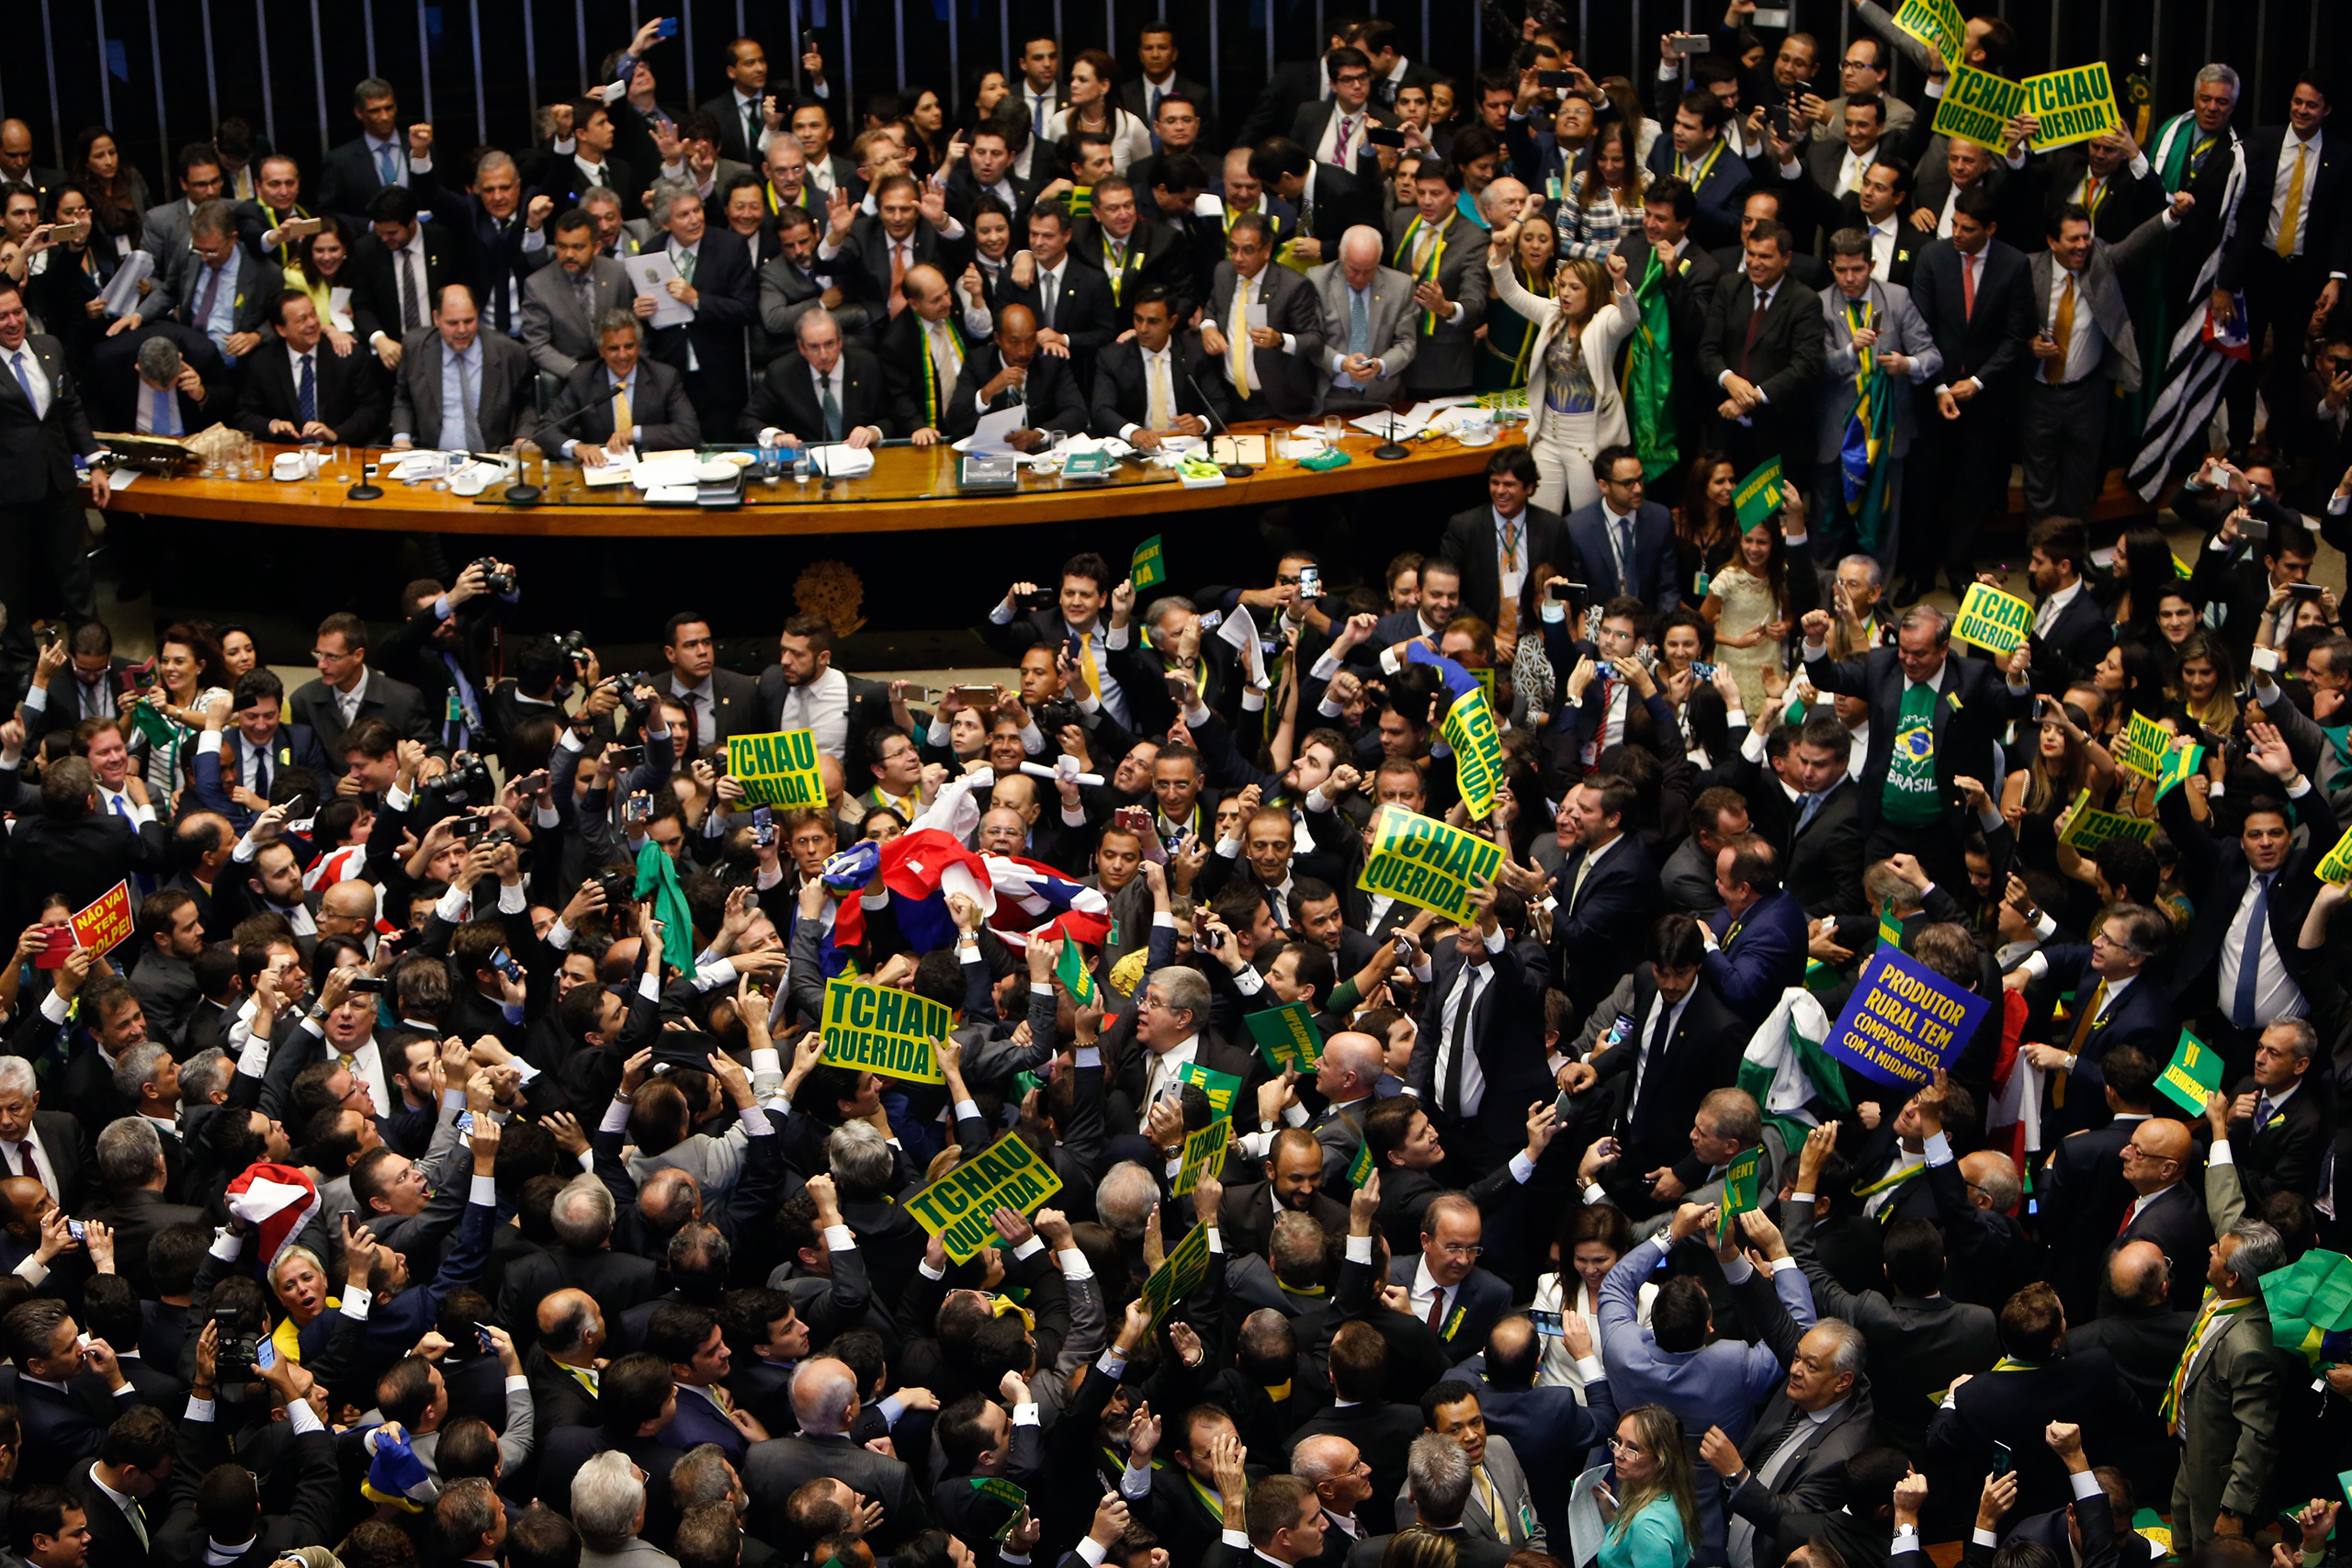 Deputies of the Lower House of Congress vote on whether to impeach President Dilma Rousseff in Brasilia, Brazil, April 17, 2016.